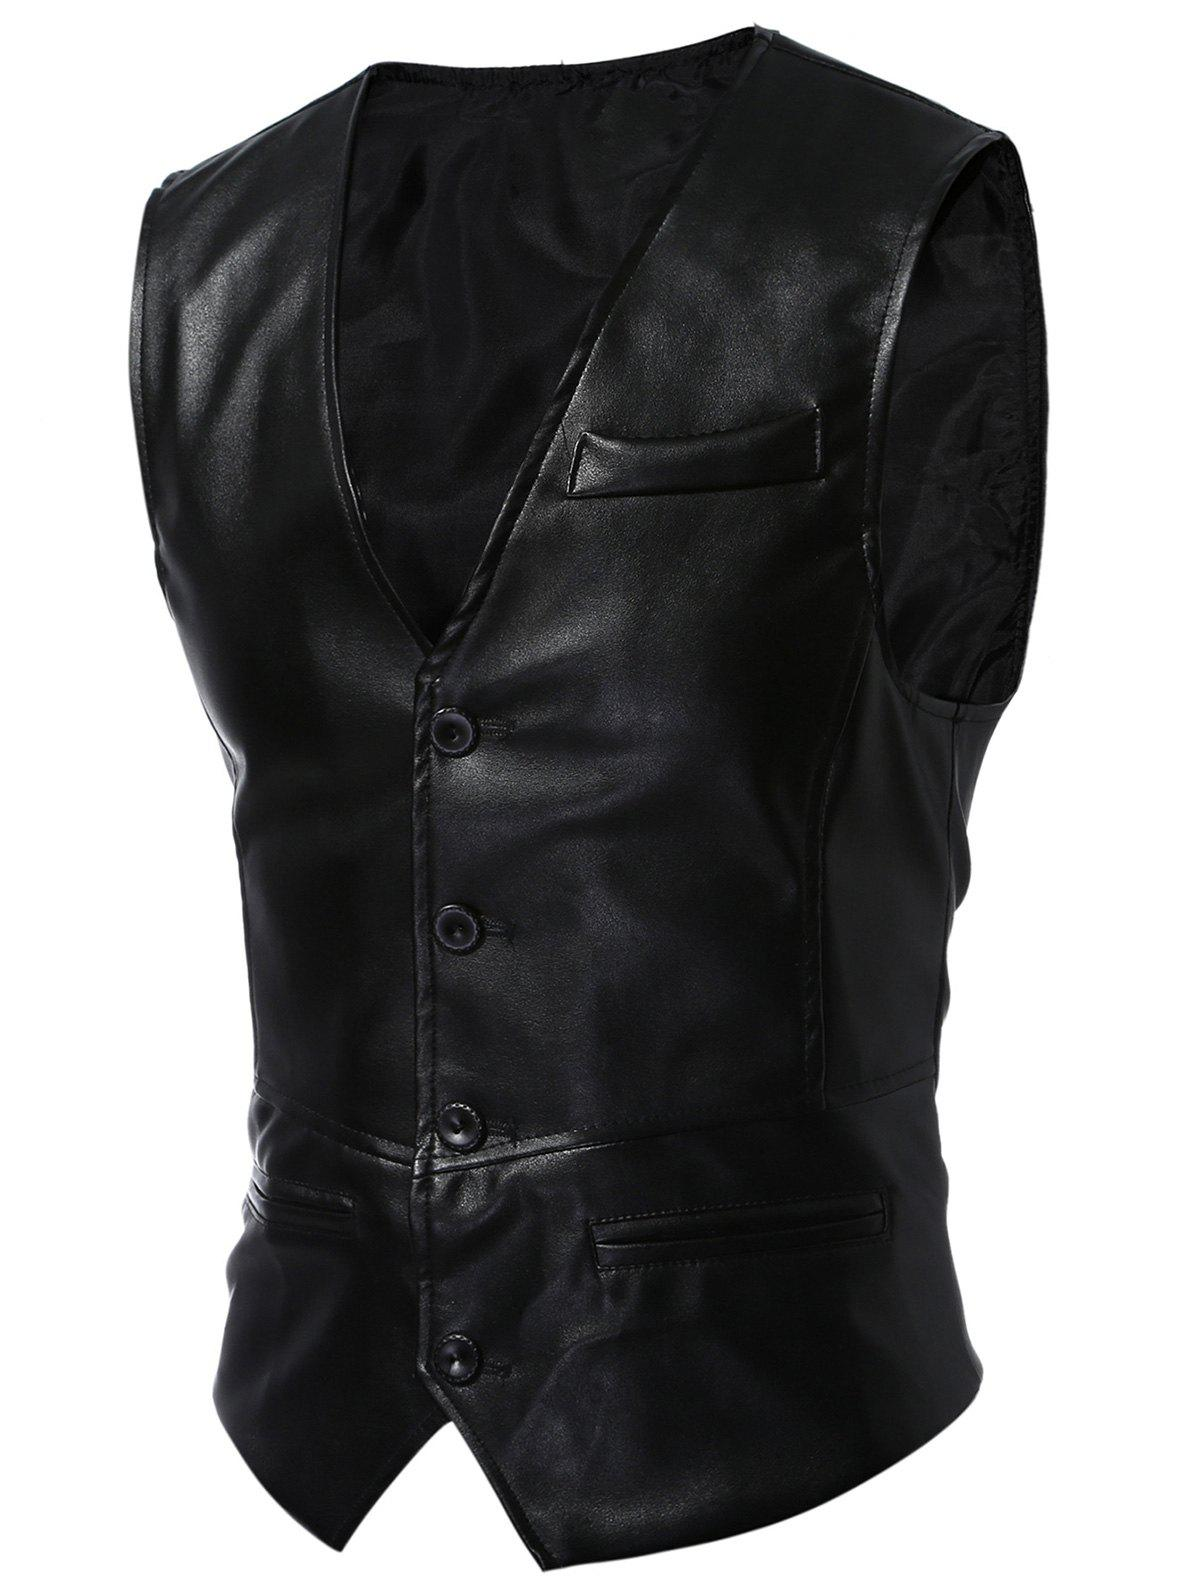 Single Breasted Faux Leather WaistcoatMEN<br><br>Size: 3XL; Color: BLACK; Material: Faux Leather,Polyester; Style: Fashion; Shirt Length: Regular; Collar: V-Neck; Thickness: Standard; Closure Type: Single Breasted; Weight: 0.3100kg; Package Contents: 1 x Waistcoat;